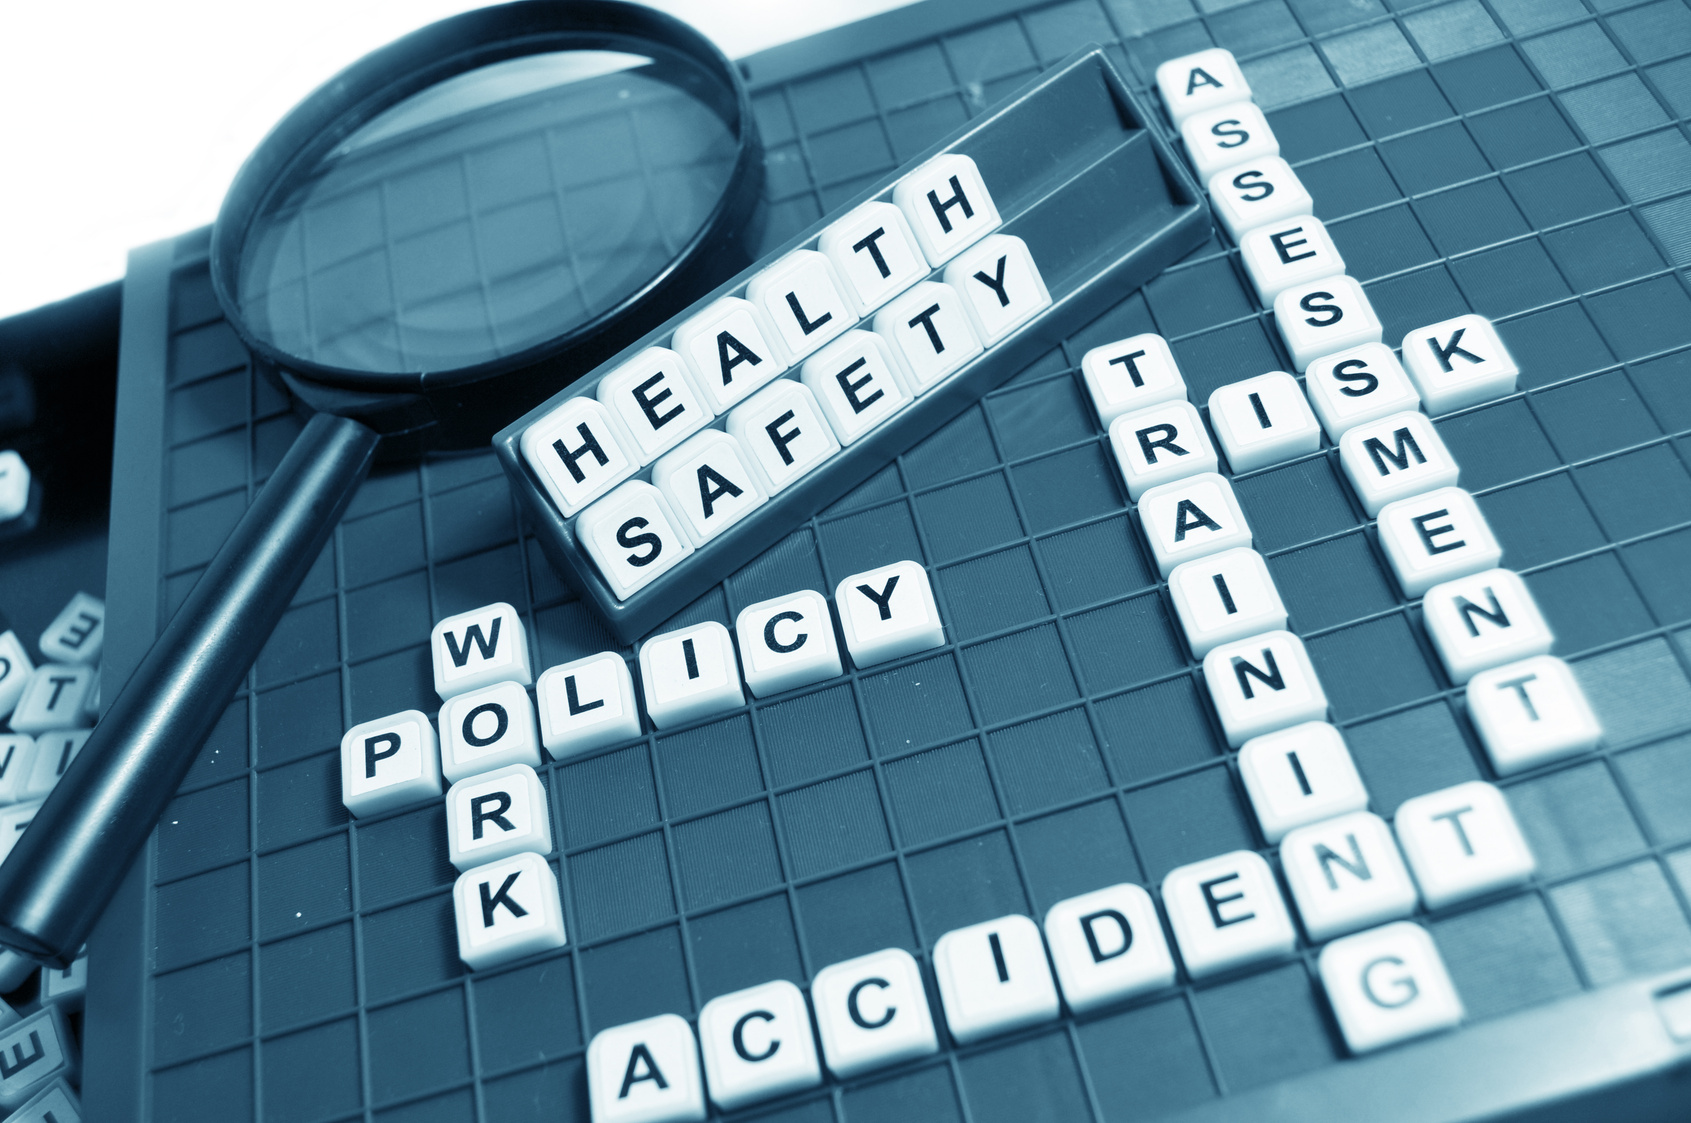 INTERNAL AUDIT QUALITY ENVIRONMENTAL, SAFETY & HEALTH MANAGEMENT SYSTEM